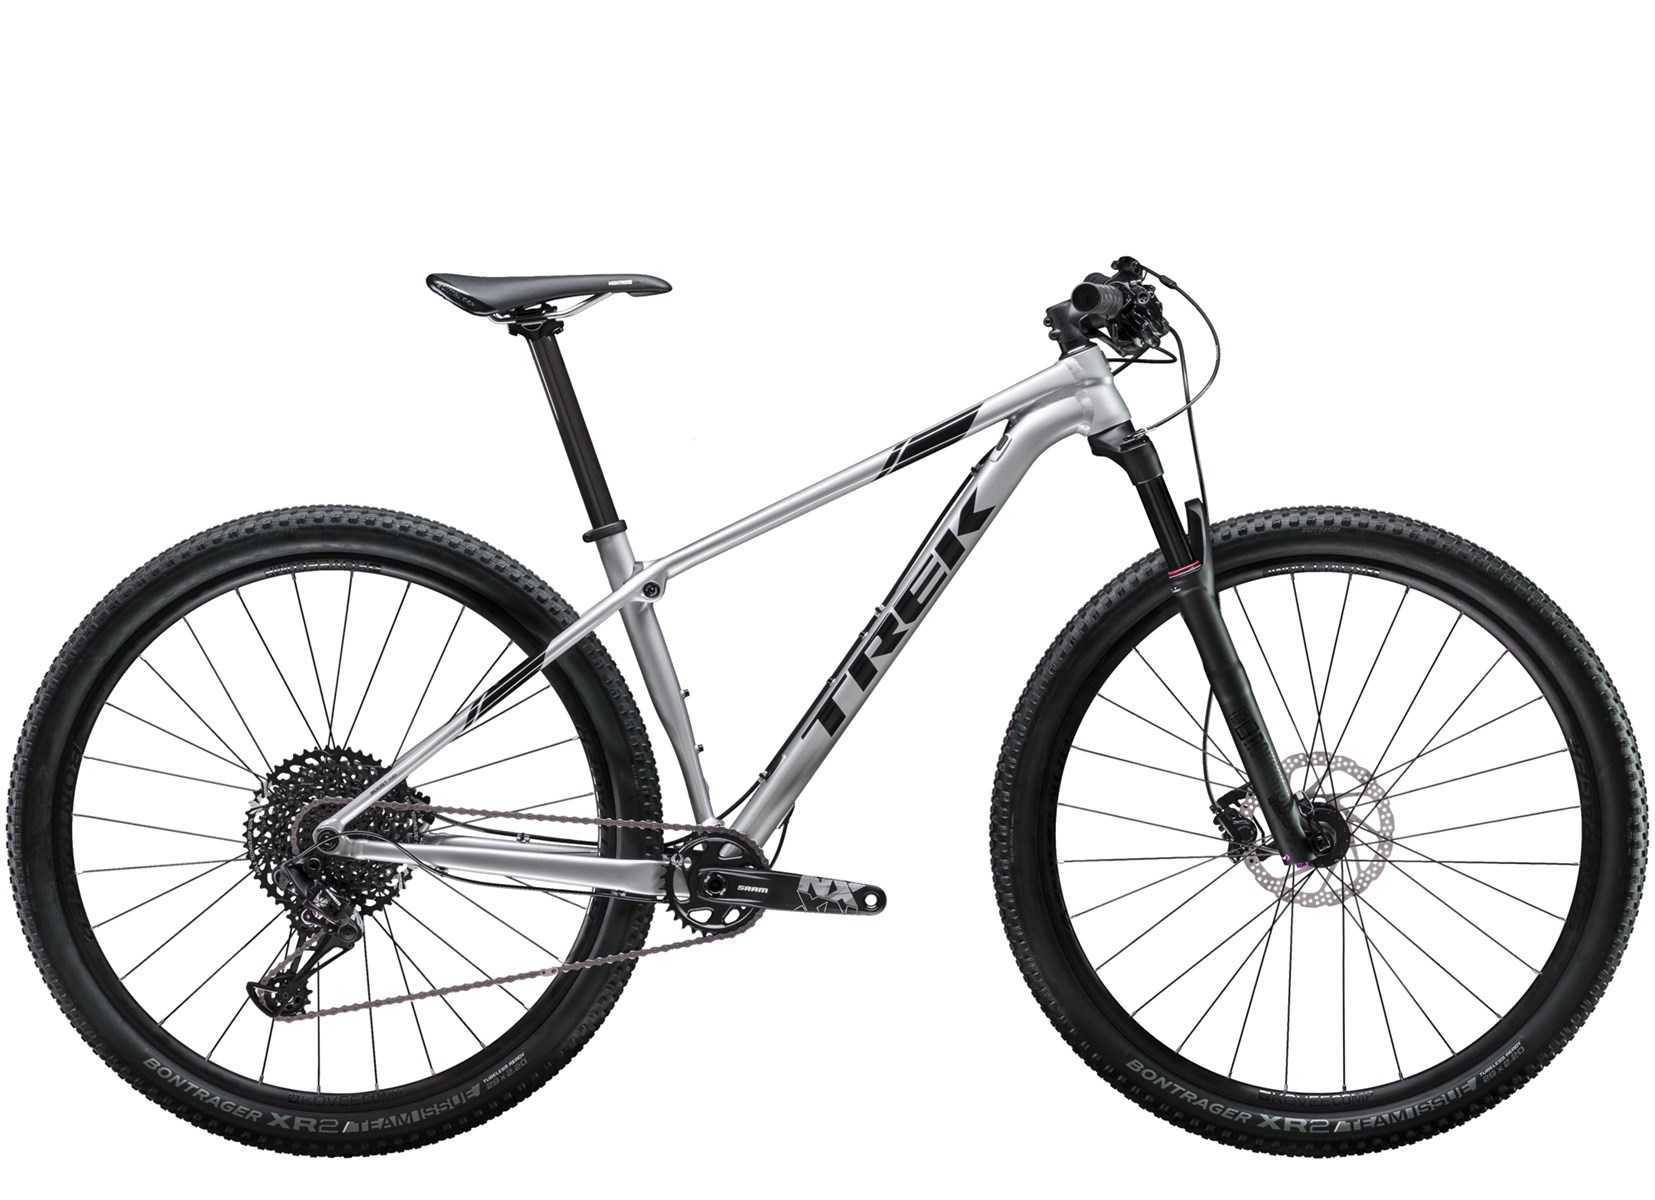 2019 Trek Procaliber 8 Mens Hardtail Mountain Bike in